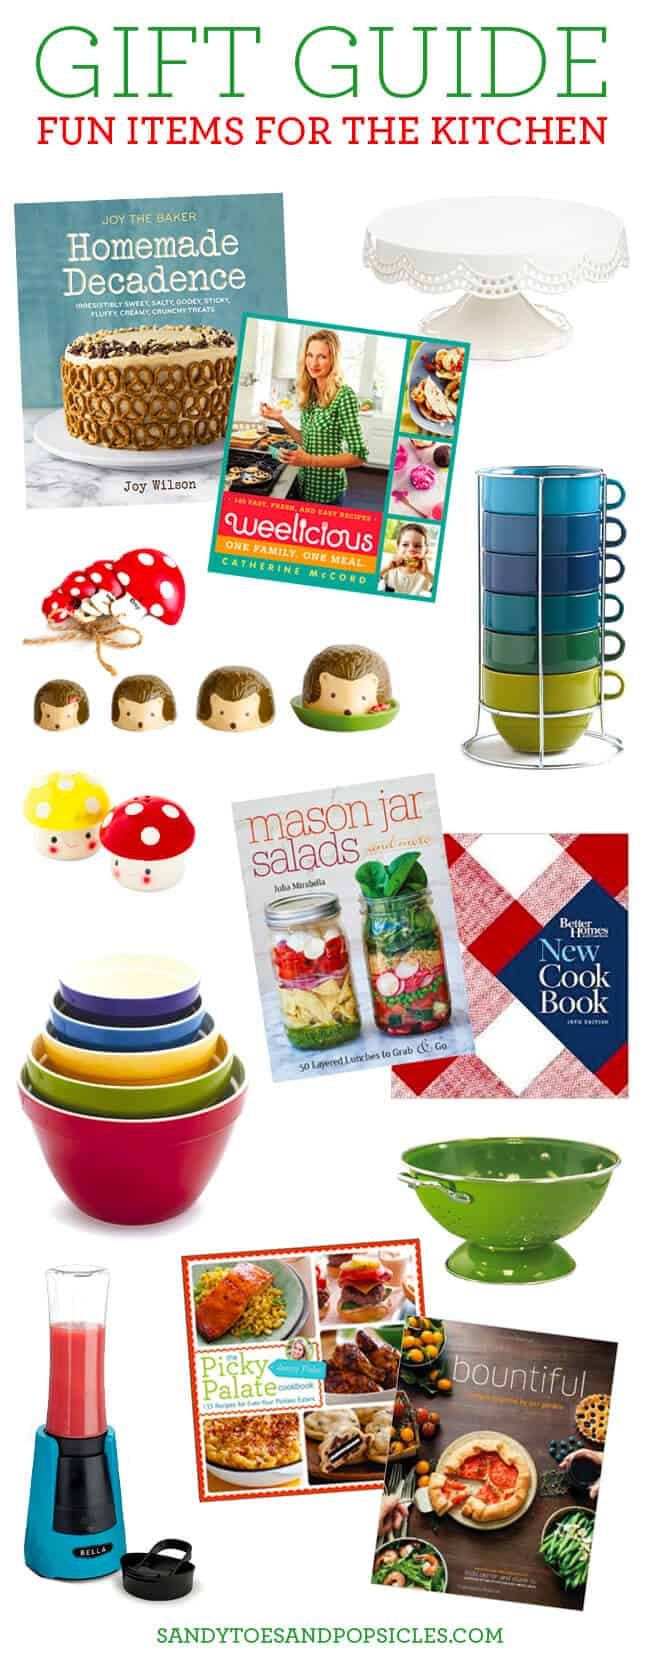 gift guide for kitchen cooks and bakers